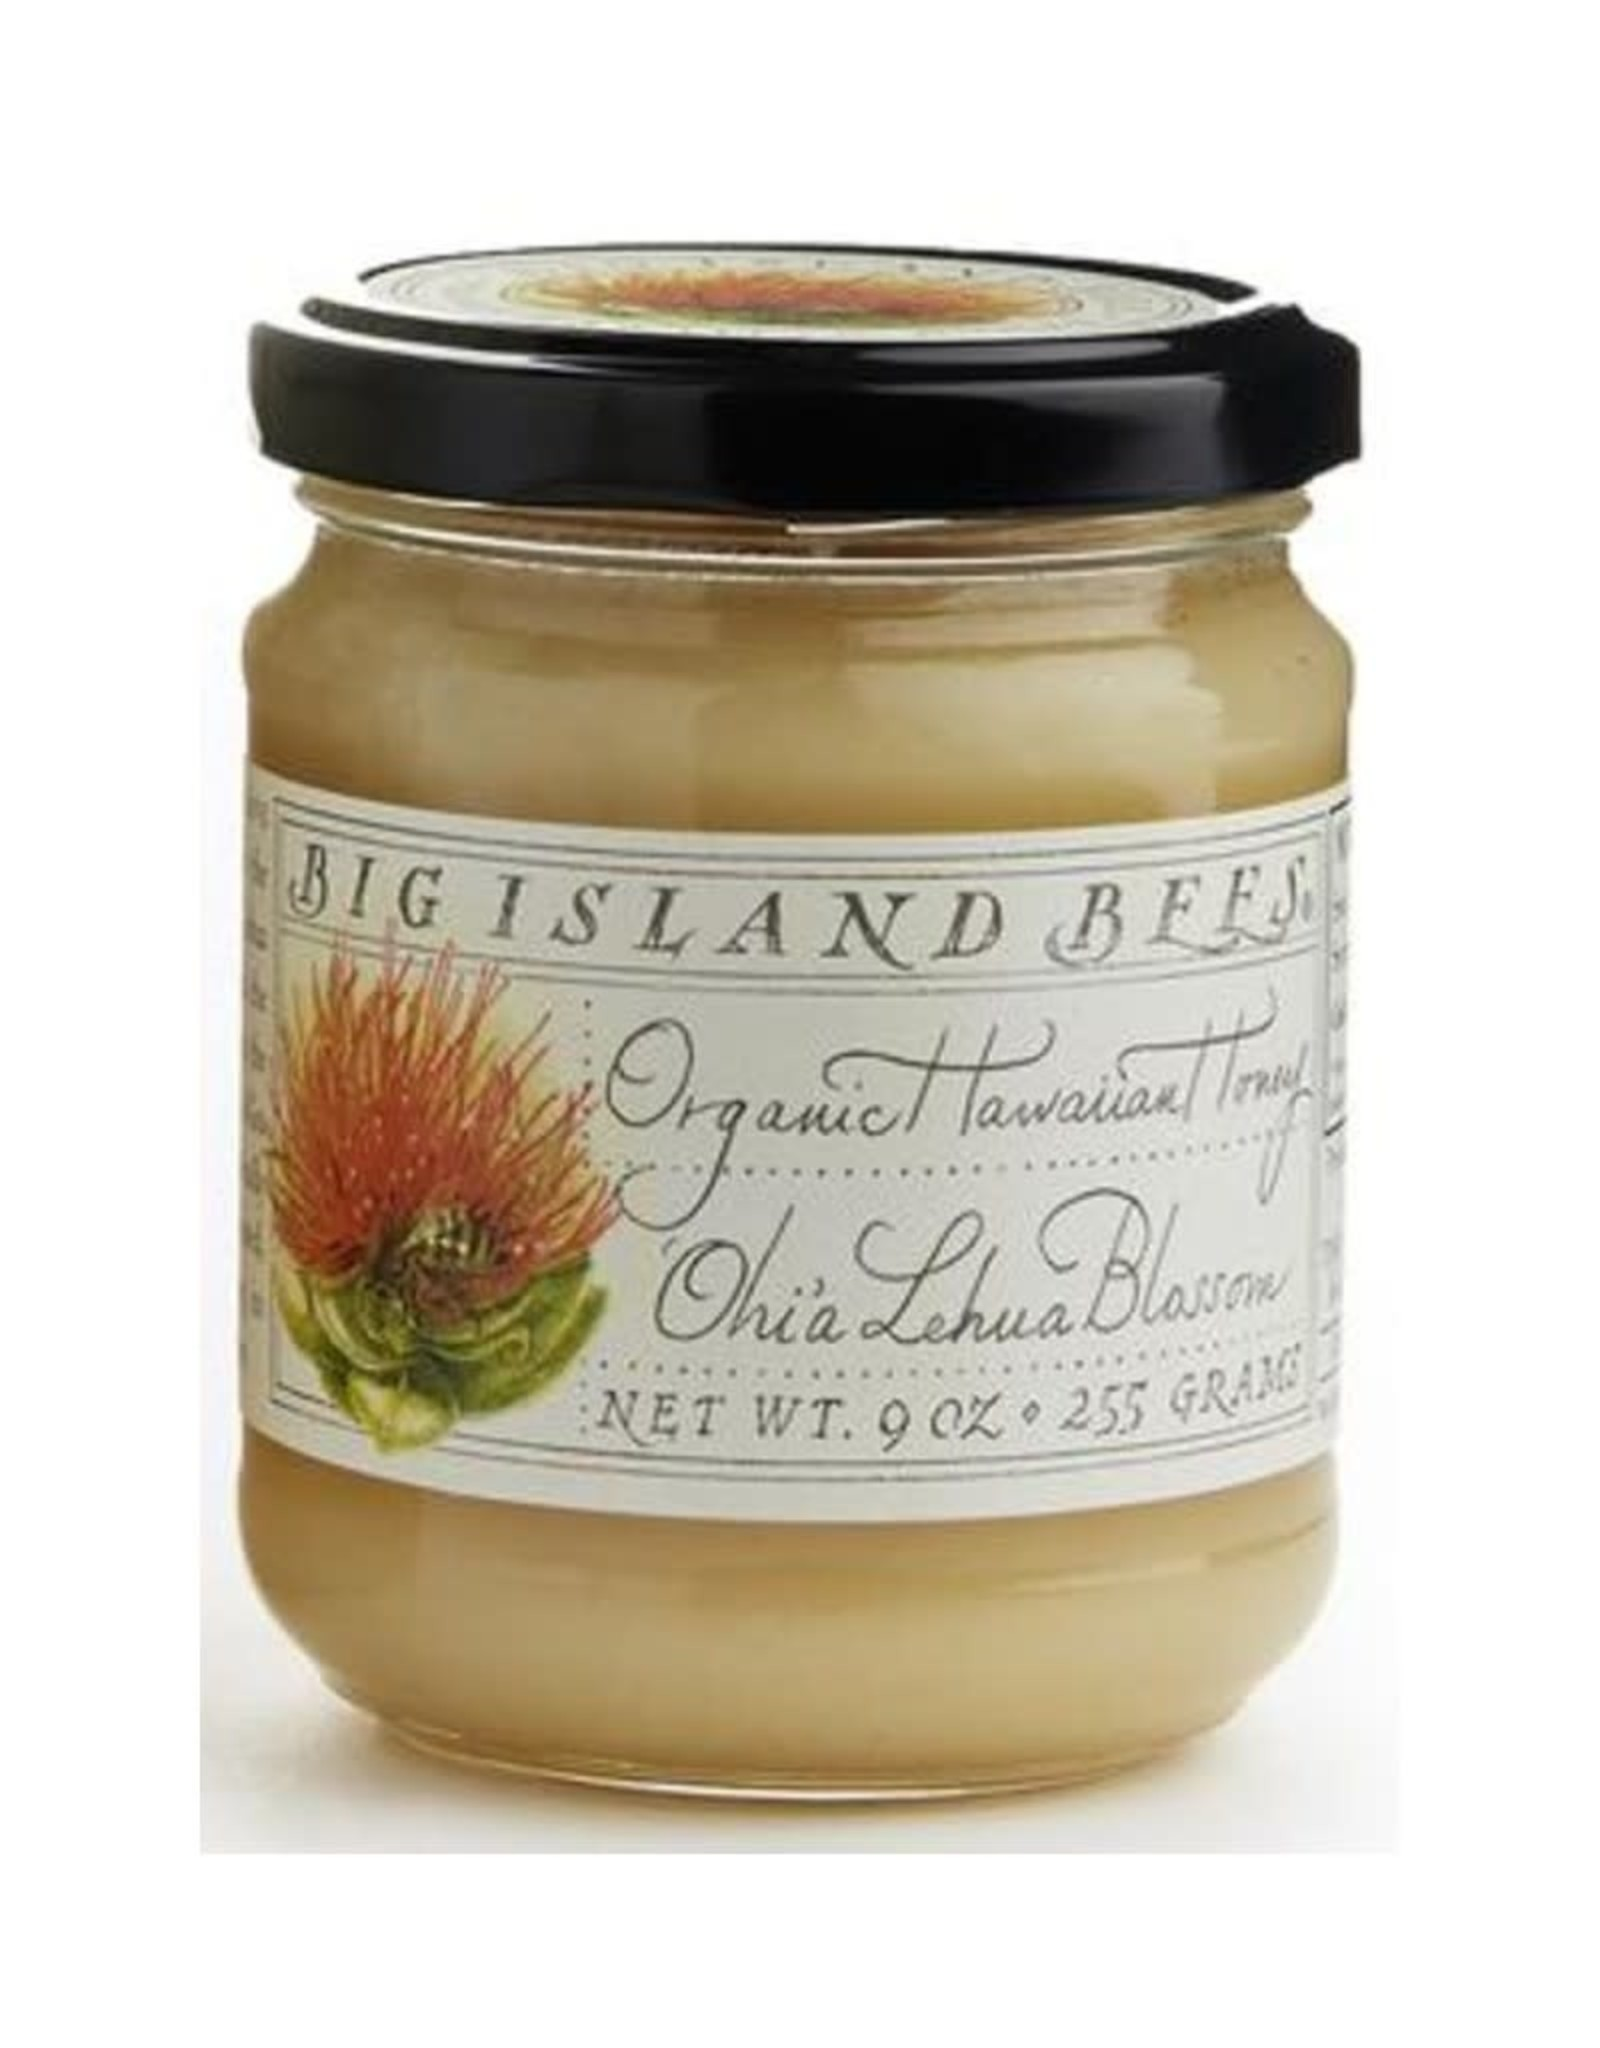 Big Island Bees Organic Lehua Honey, 9 oz.